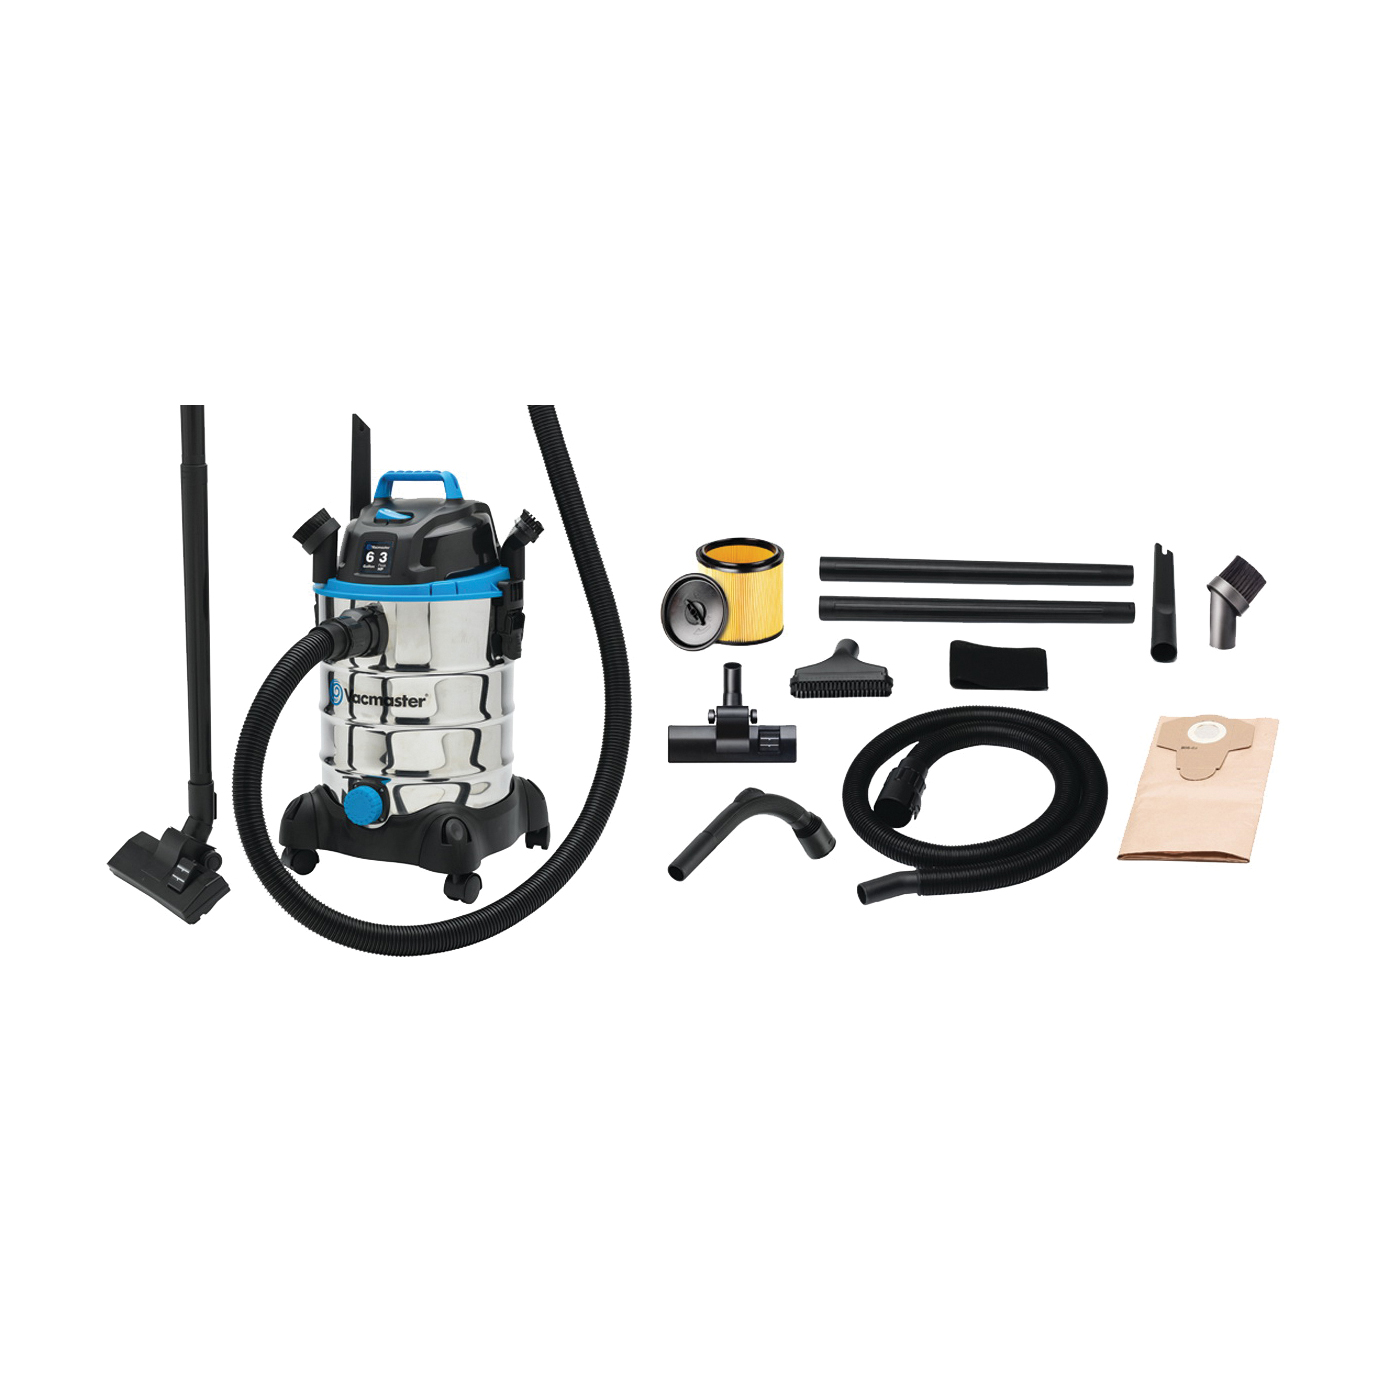 Picture of Vacmaster Professional VQ607SFD Wet/Dry Vacuum Cleaner, 6 gal Vacuum, Cartridge Filter